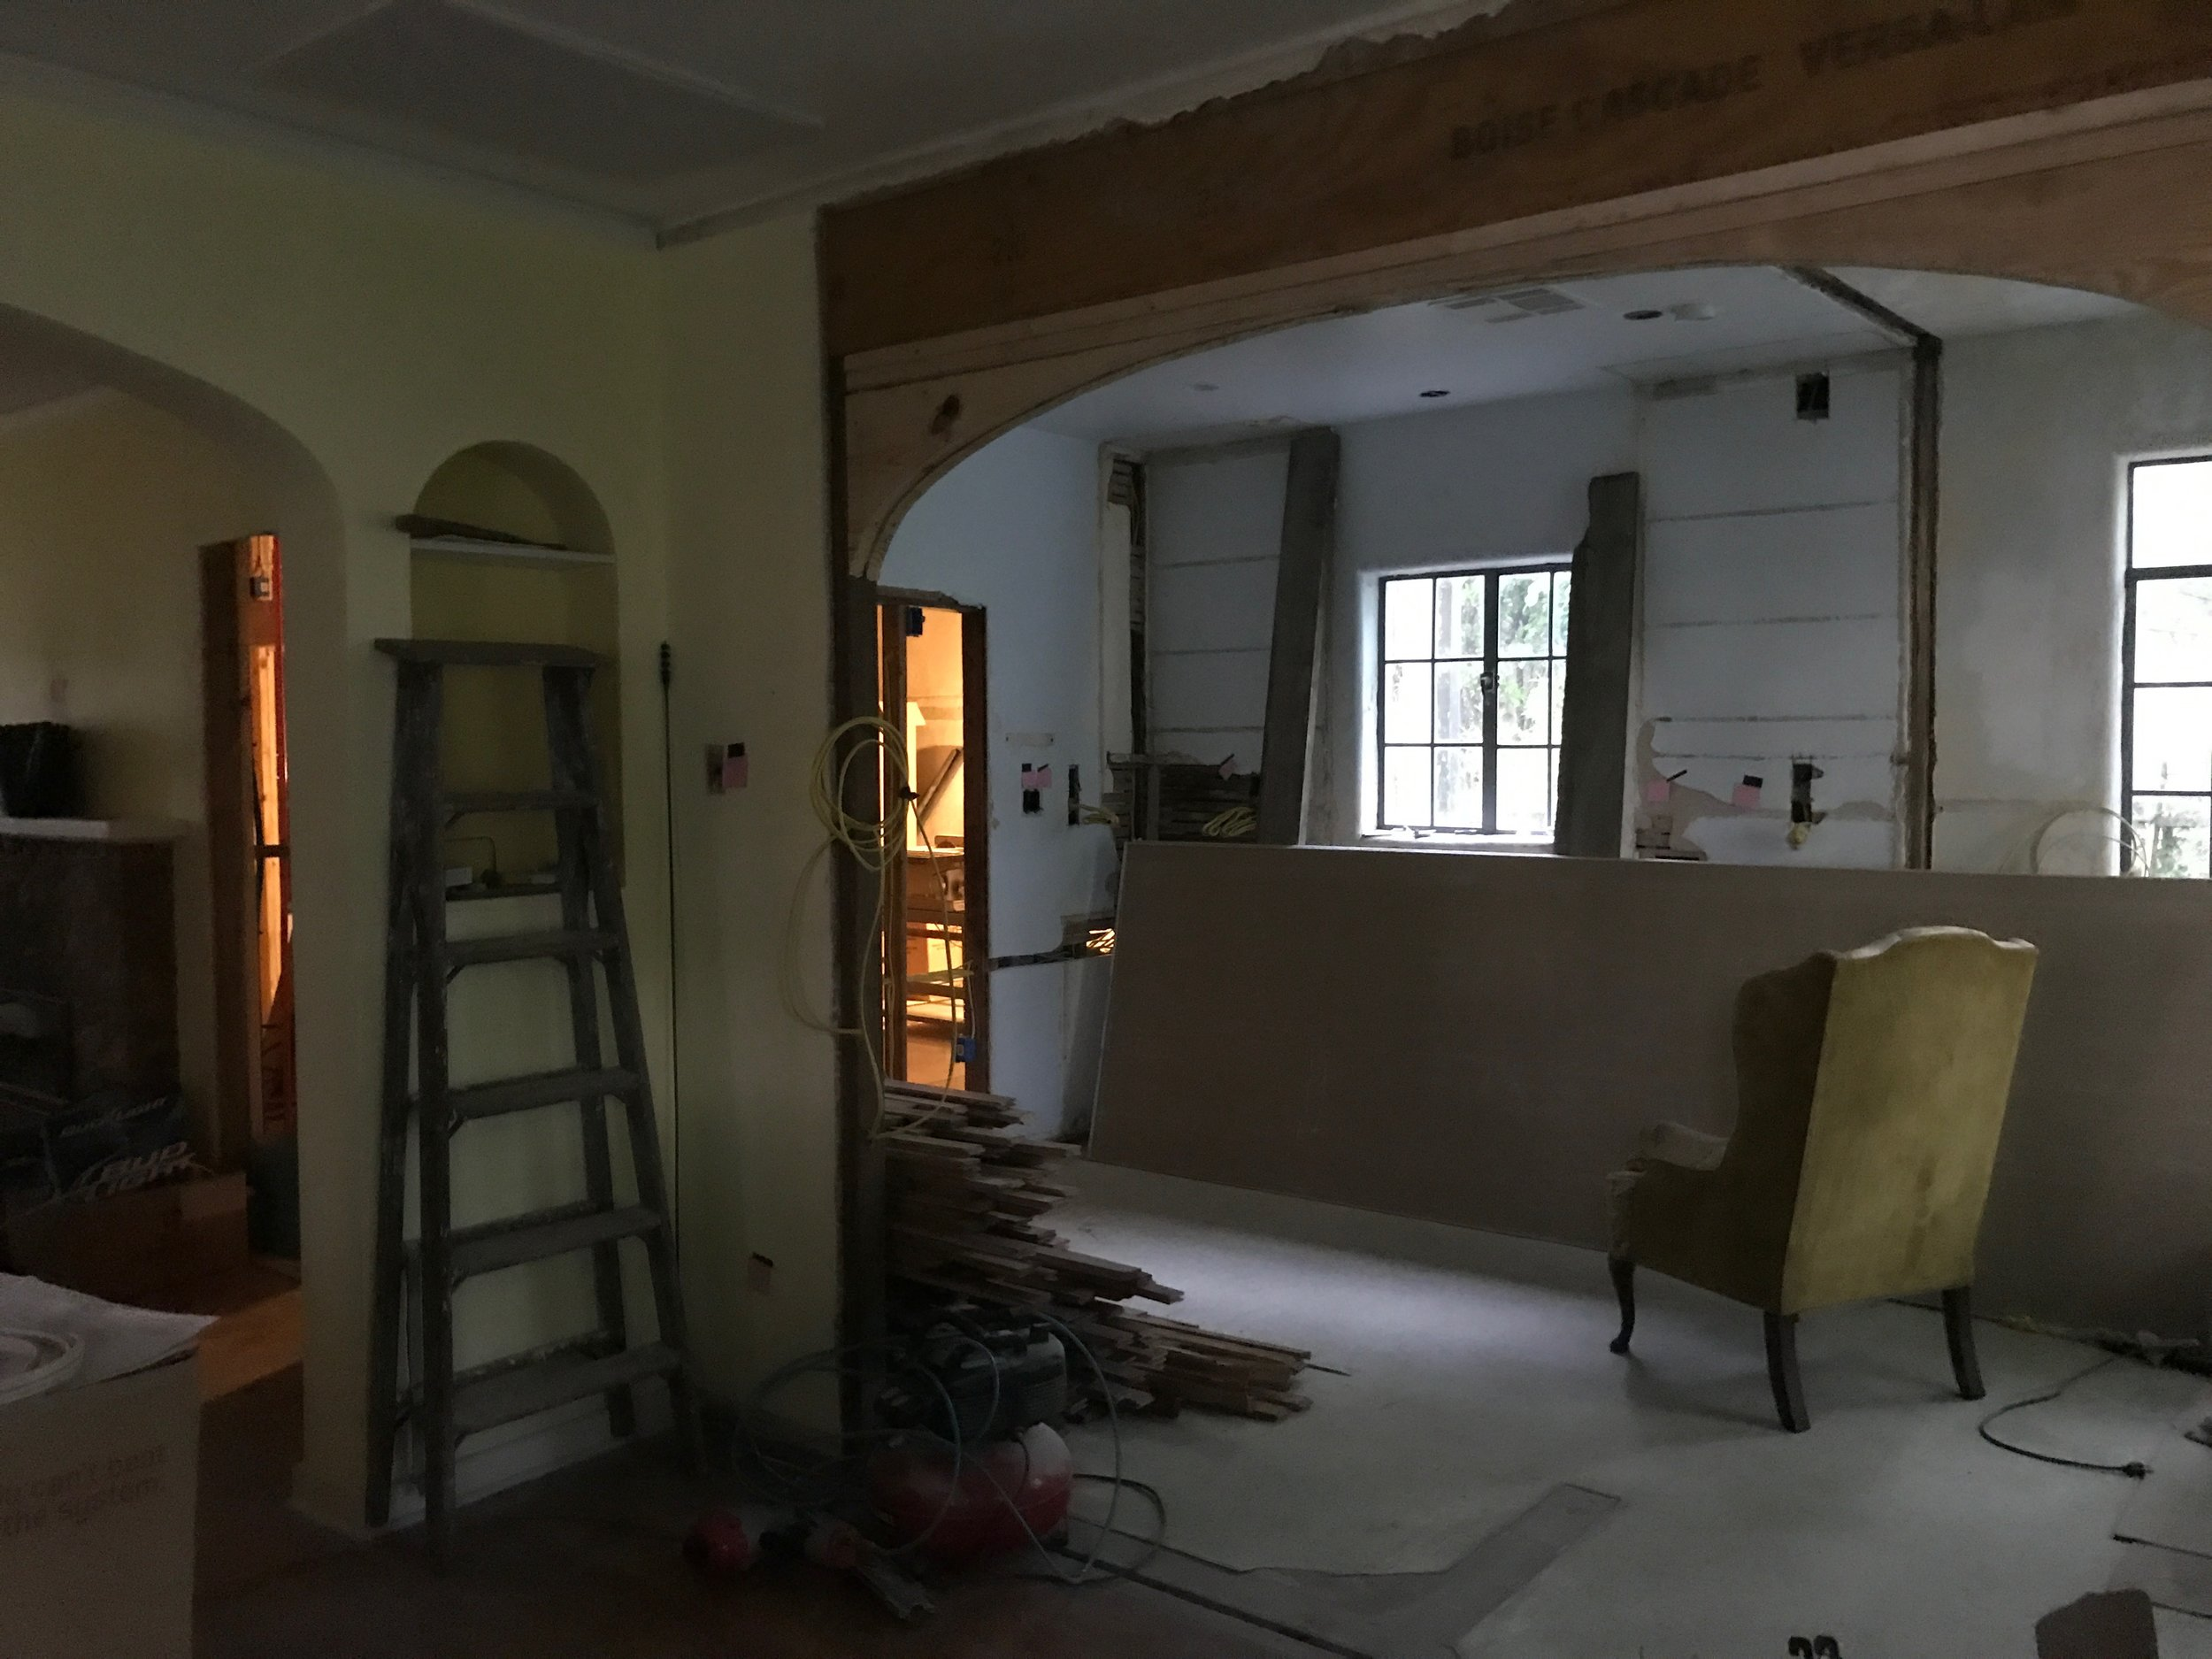 framing up the arched opening to mimic the one from dining to main living room